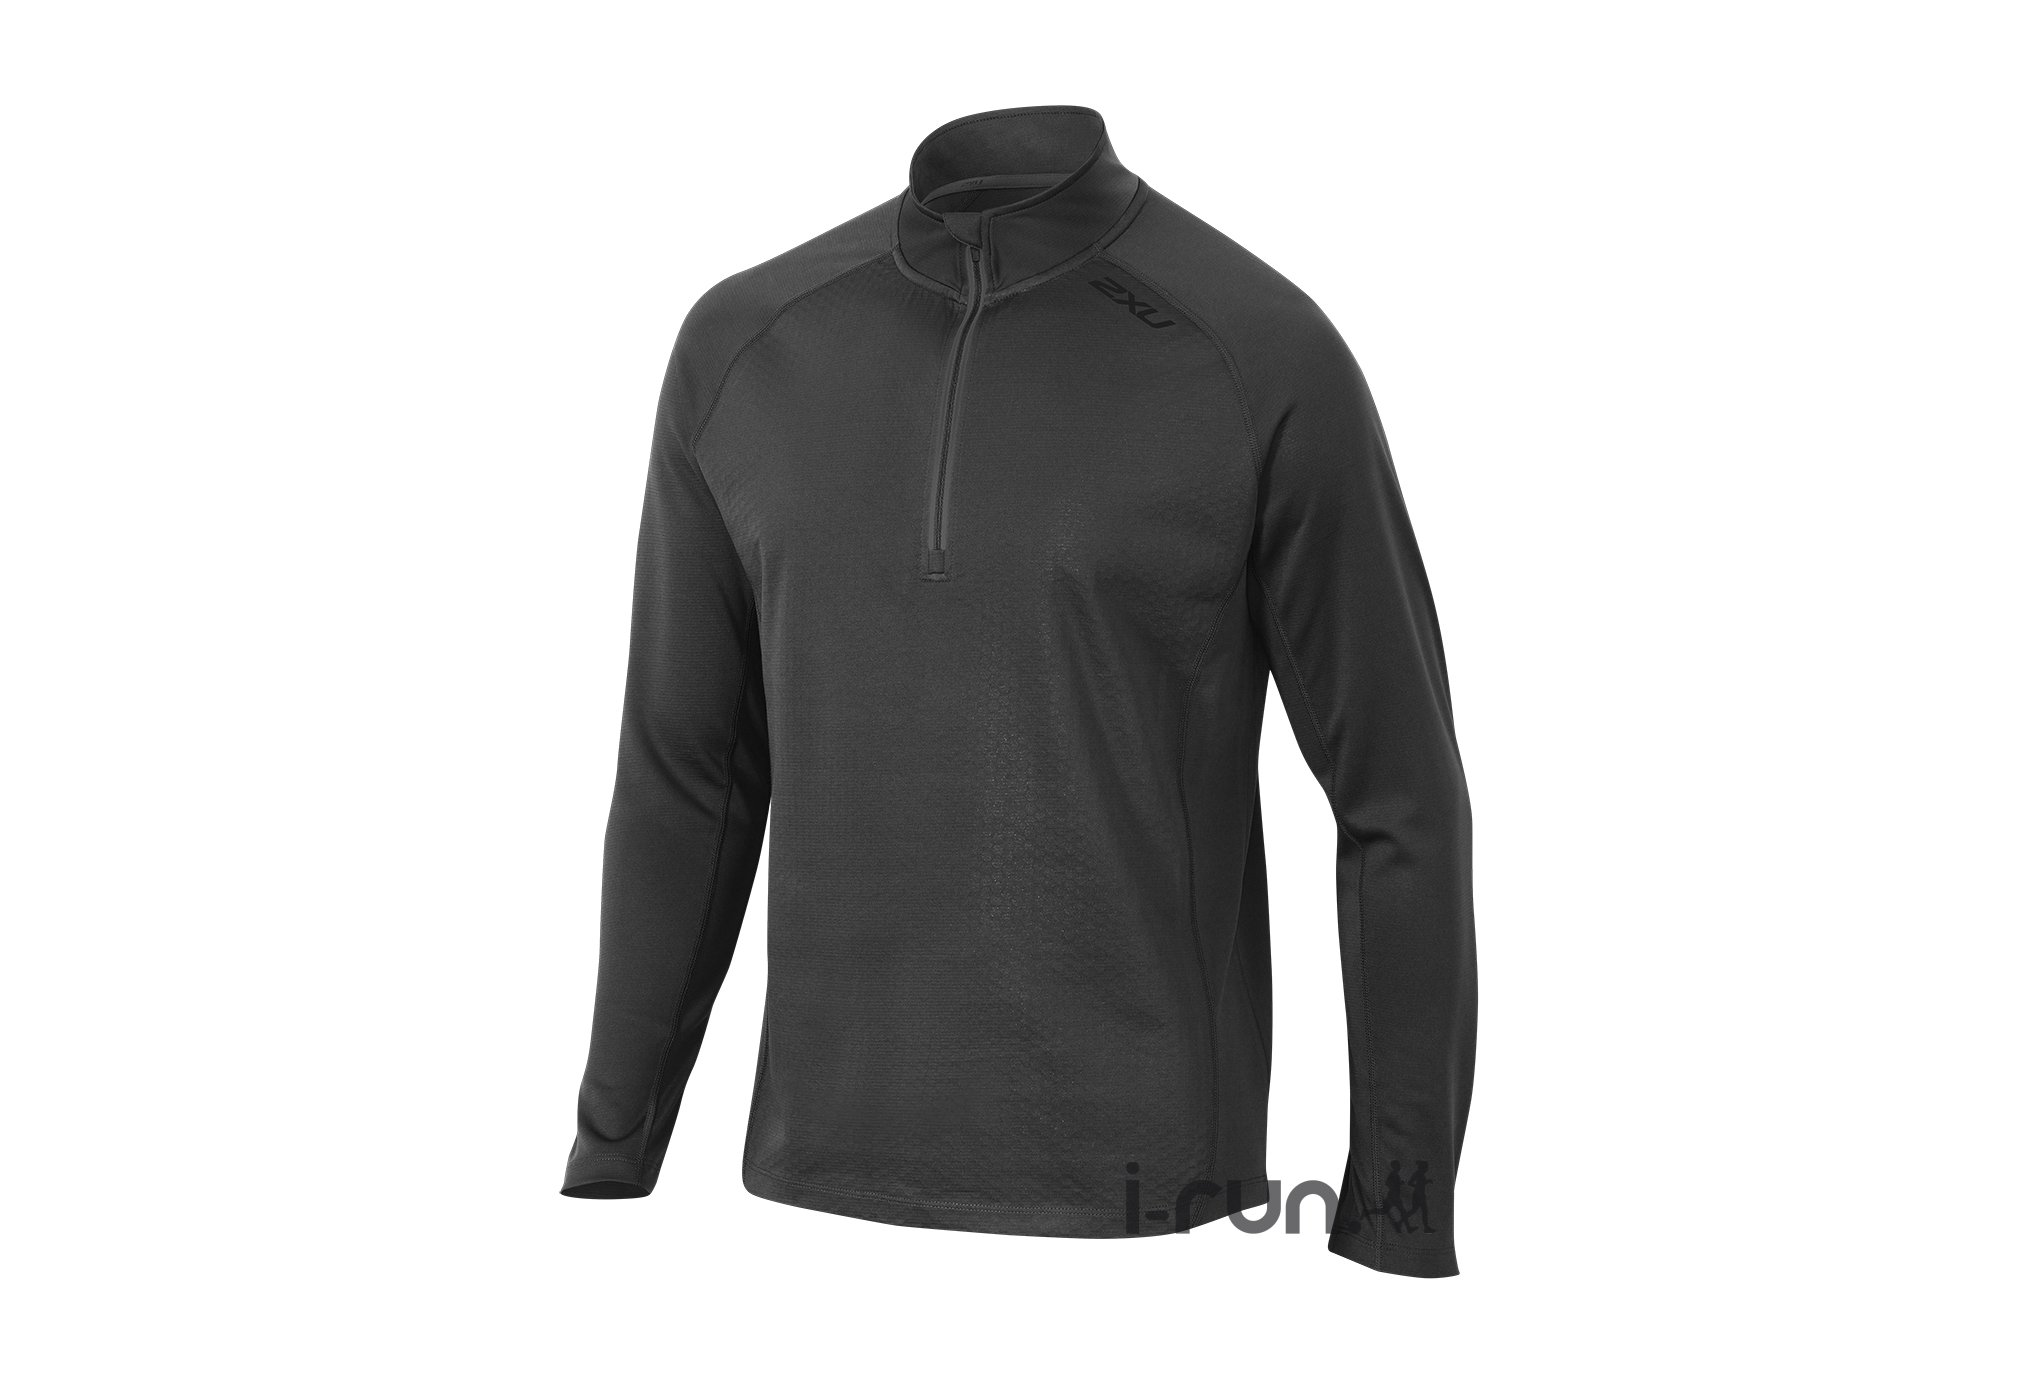 2xu Maillot ignition 1/4 zip m vêtement running homme